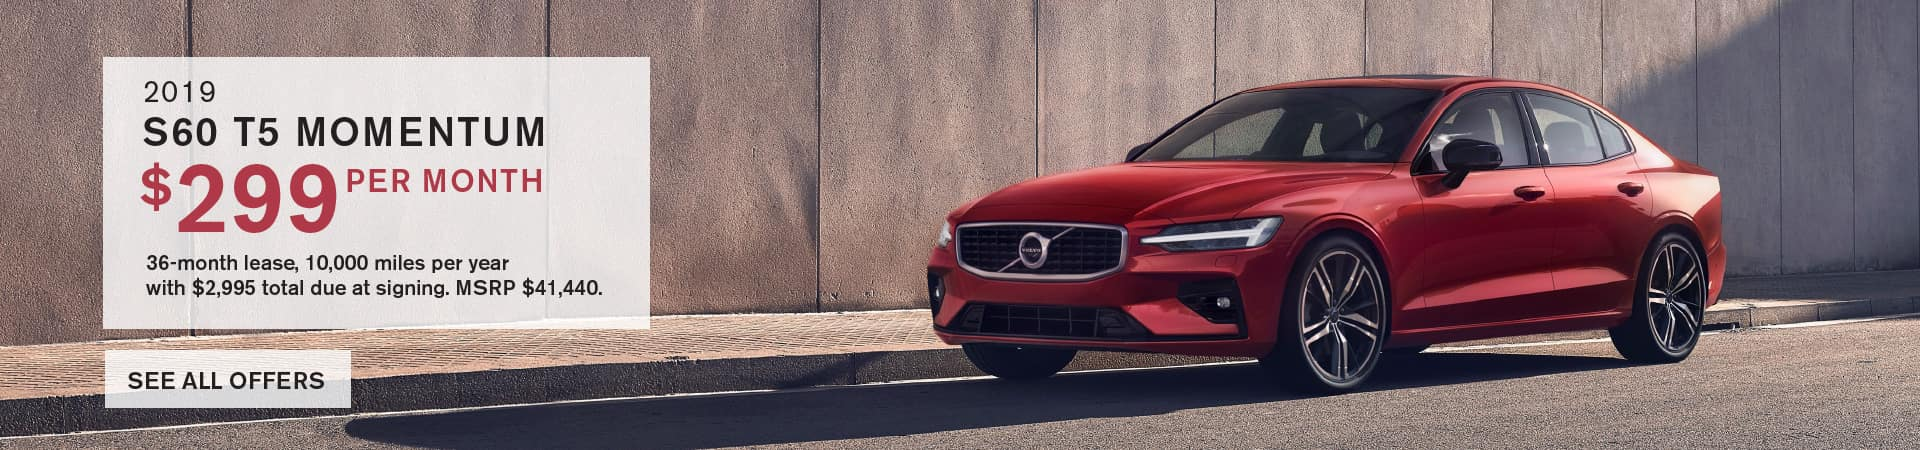 Autobahn Volvo Cars Fort Worth | New and Pre-Owned Car